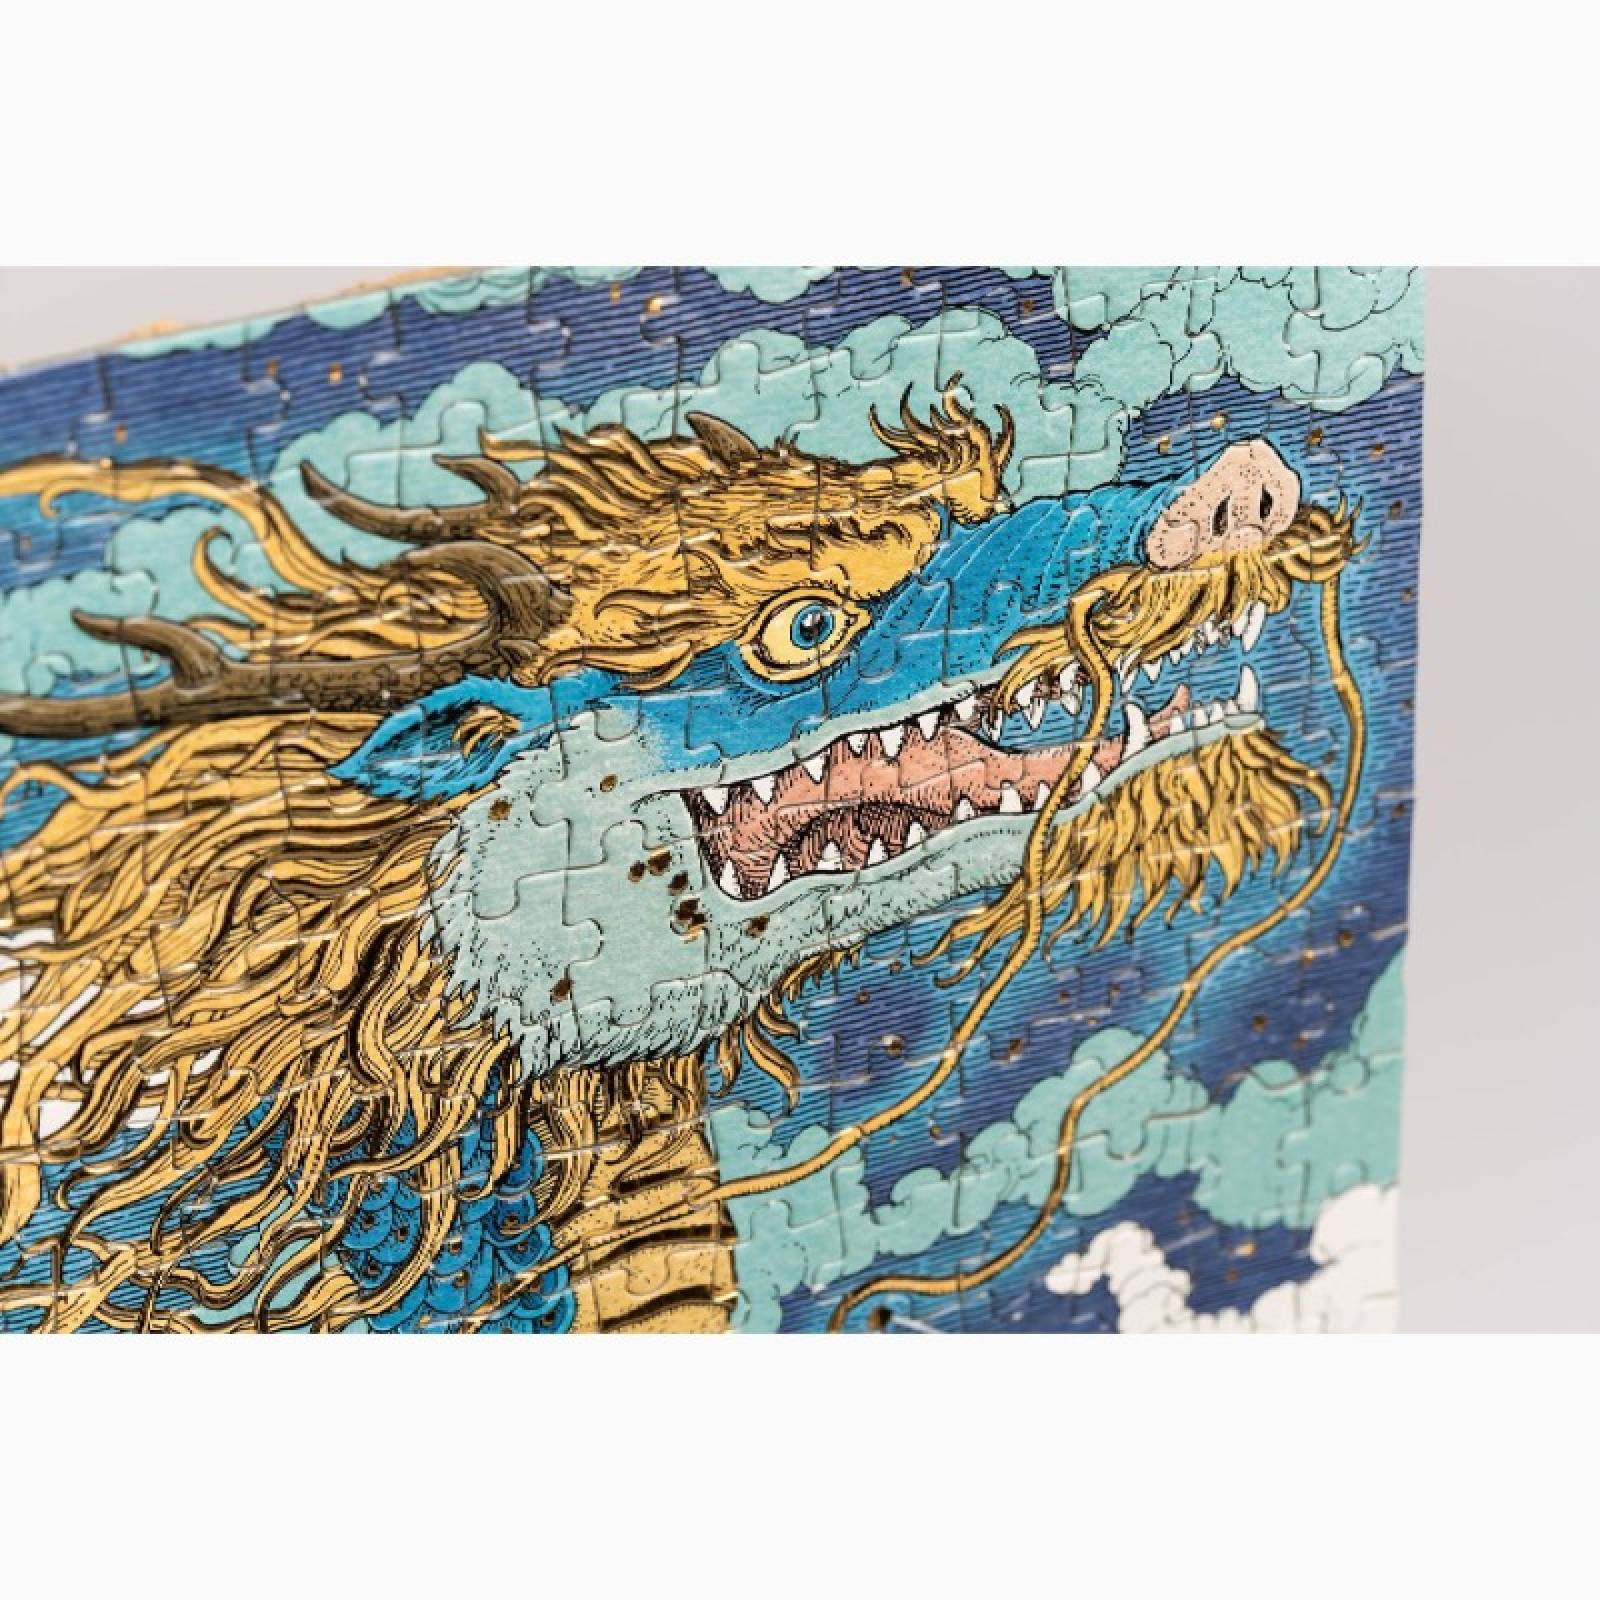 Dragons Of The Skies - 1000 Piece Jigsaw Puzzle thumbnails